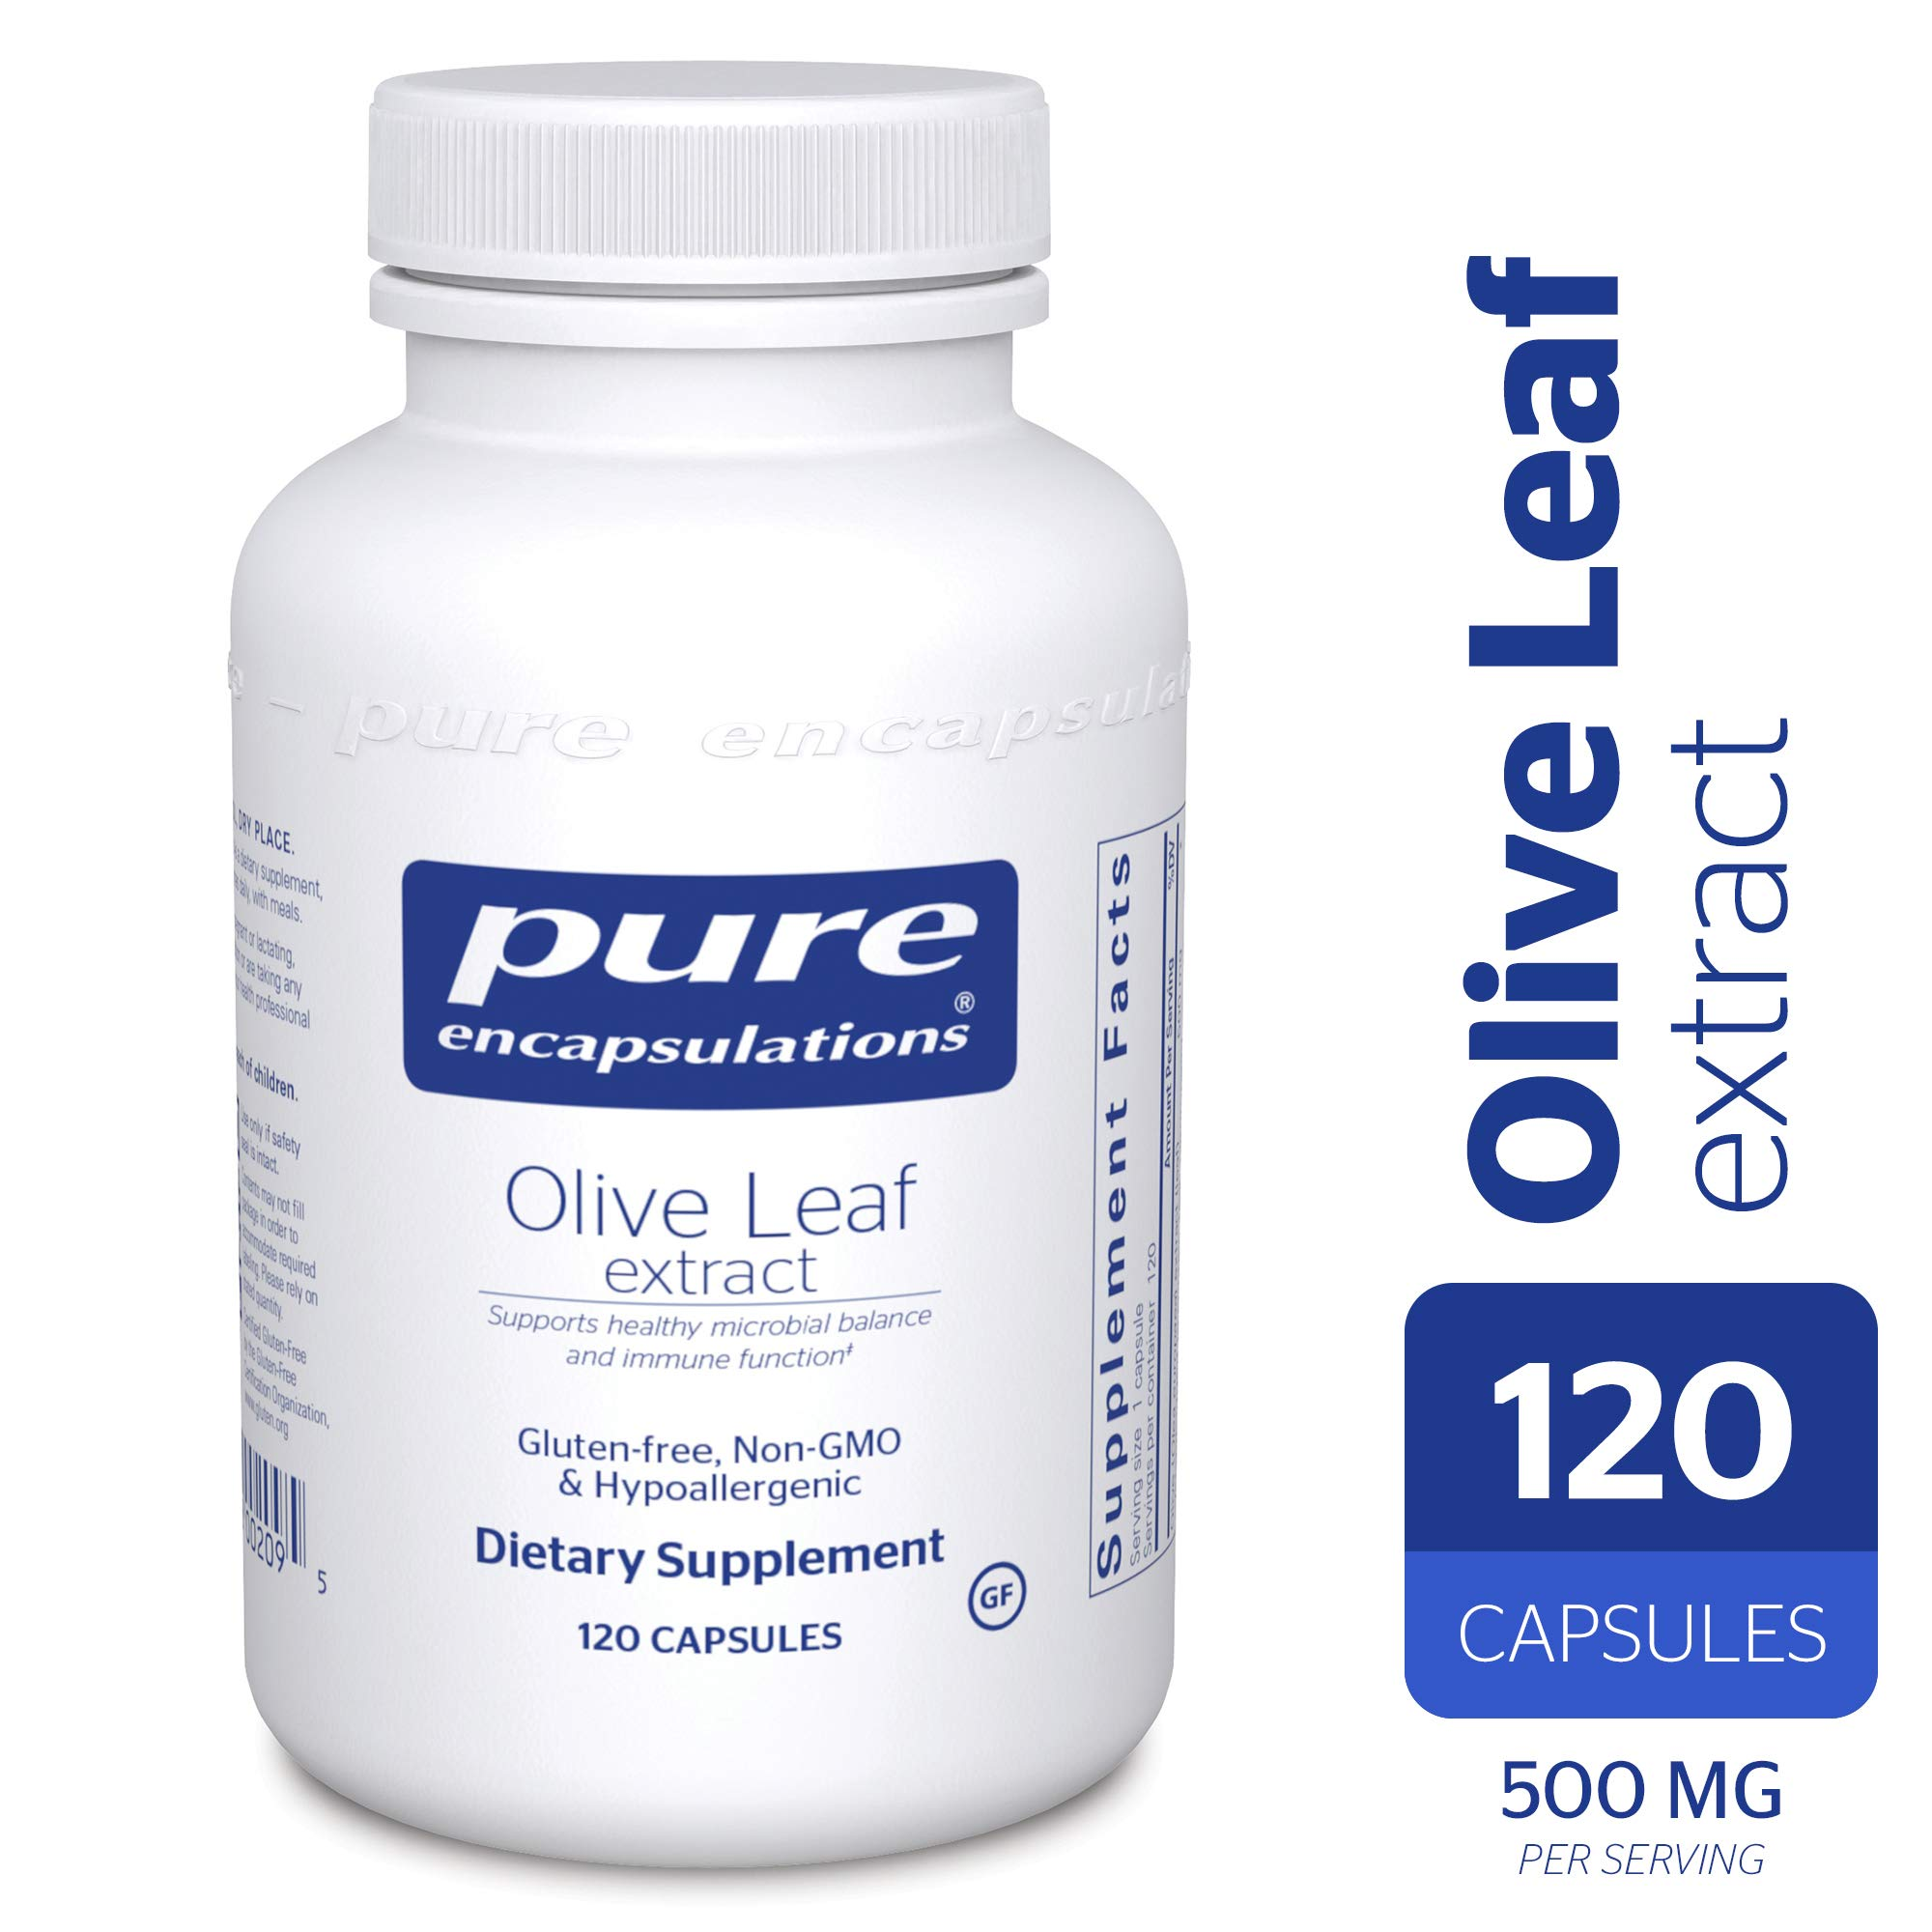 Pure Encapsulations - Olive Leaf Extract - Hypoallergenic Supplement Supports Immune System and Healthy Intestinal Environment* - 120 Capsules